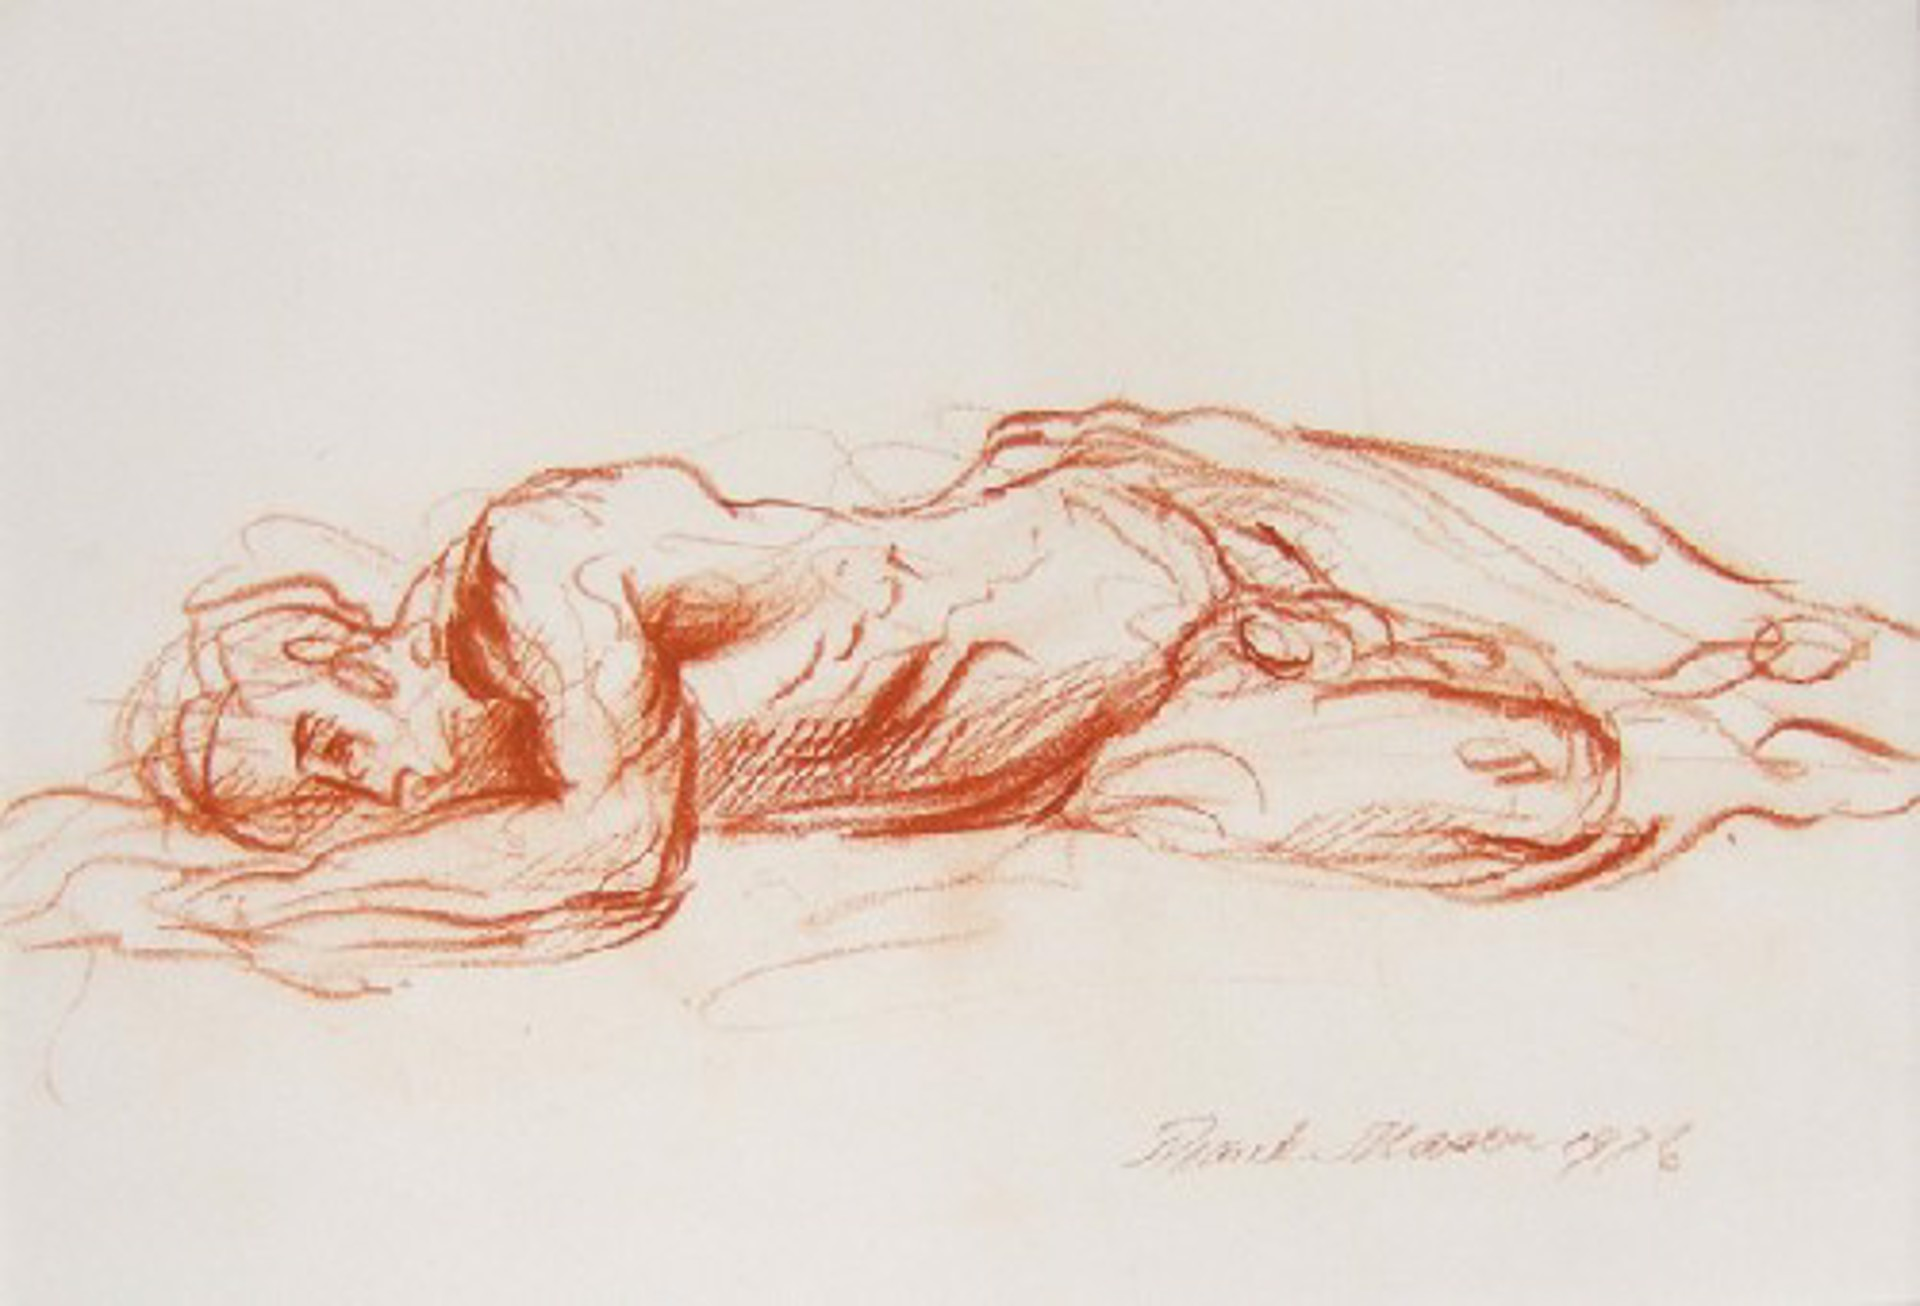 Sleeping Endymion by Frank Mason (1921 - 2009)